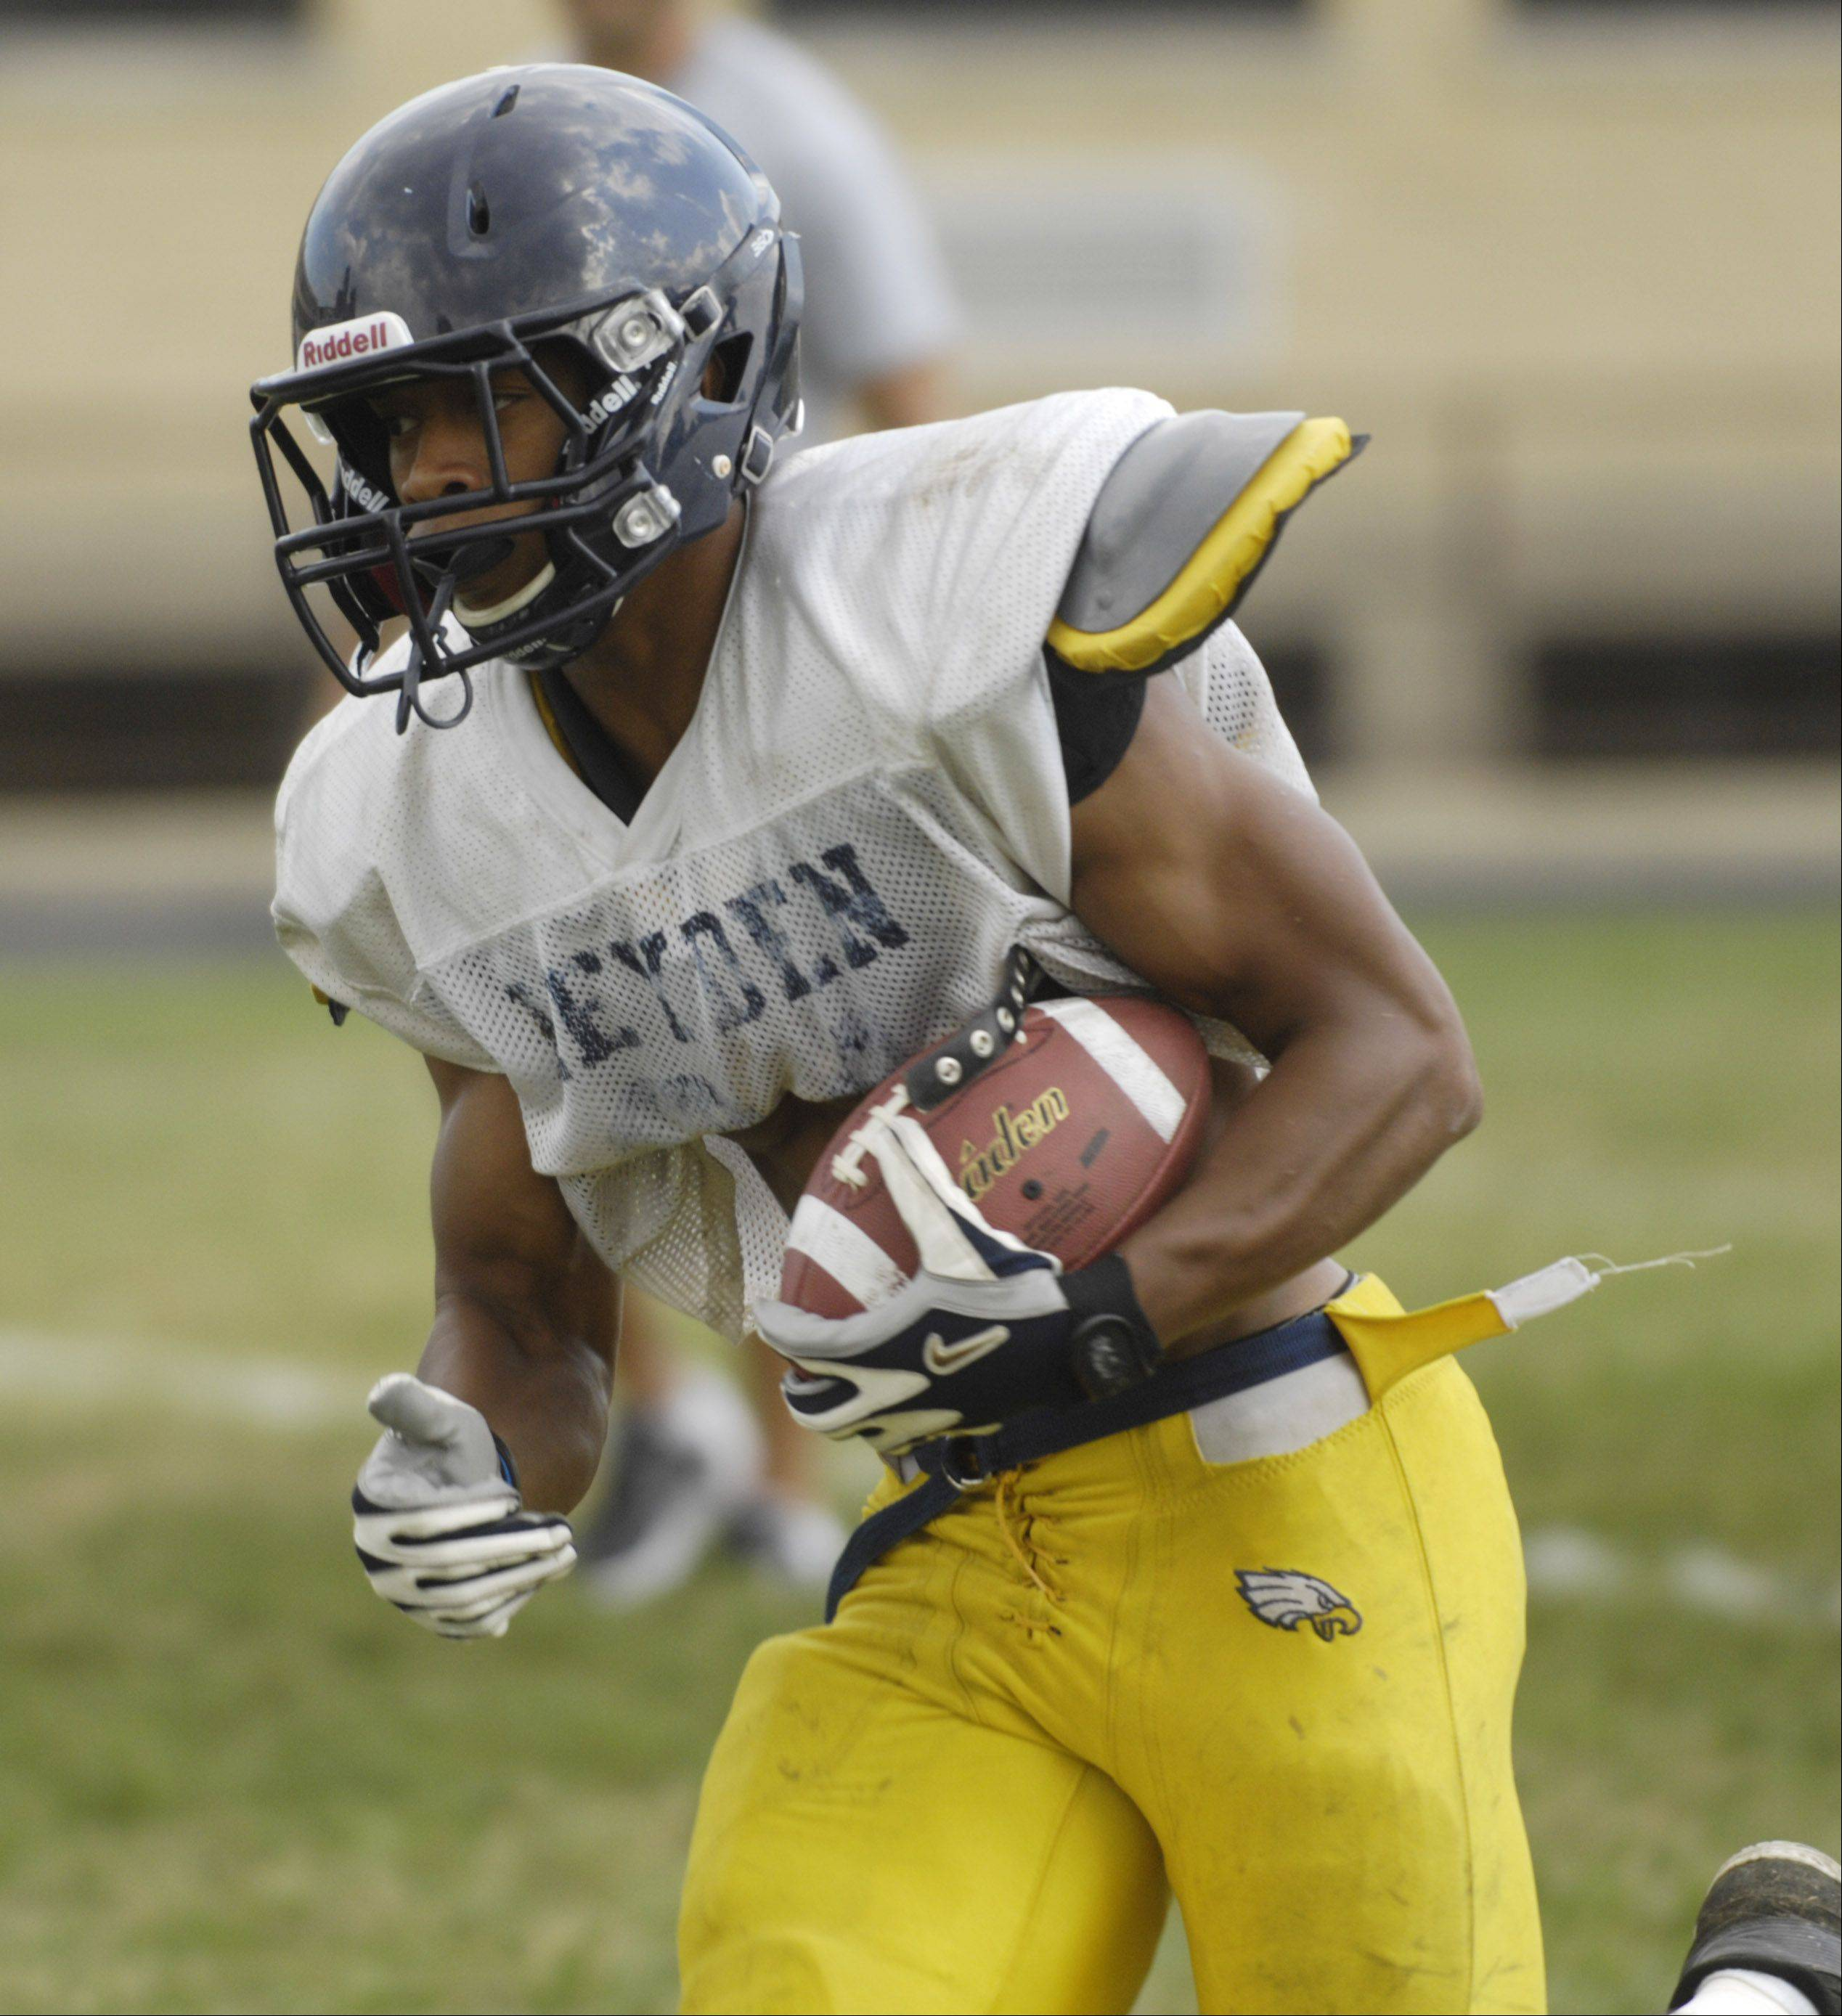 Running back Keenon Davis is among the key returning players for defending West Suburban Gold champion Leyden.